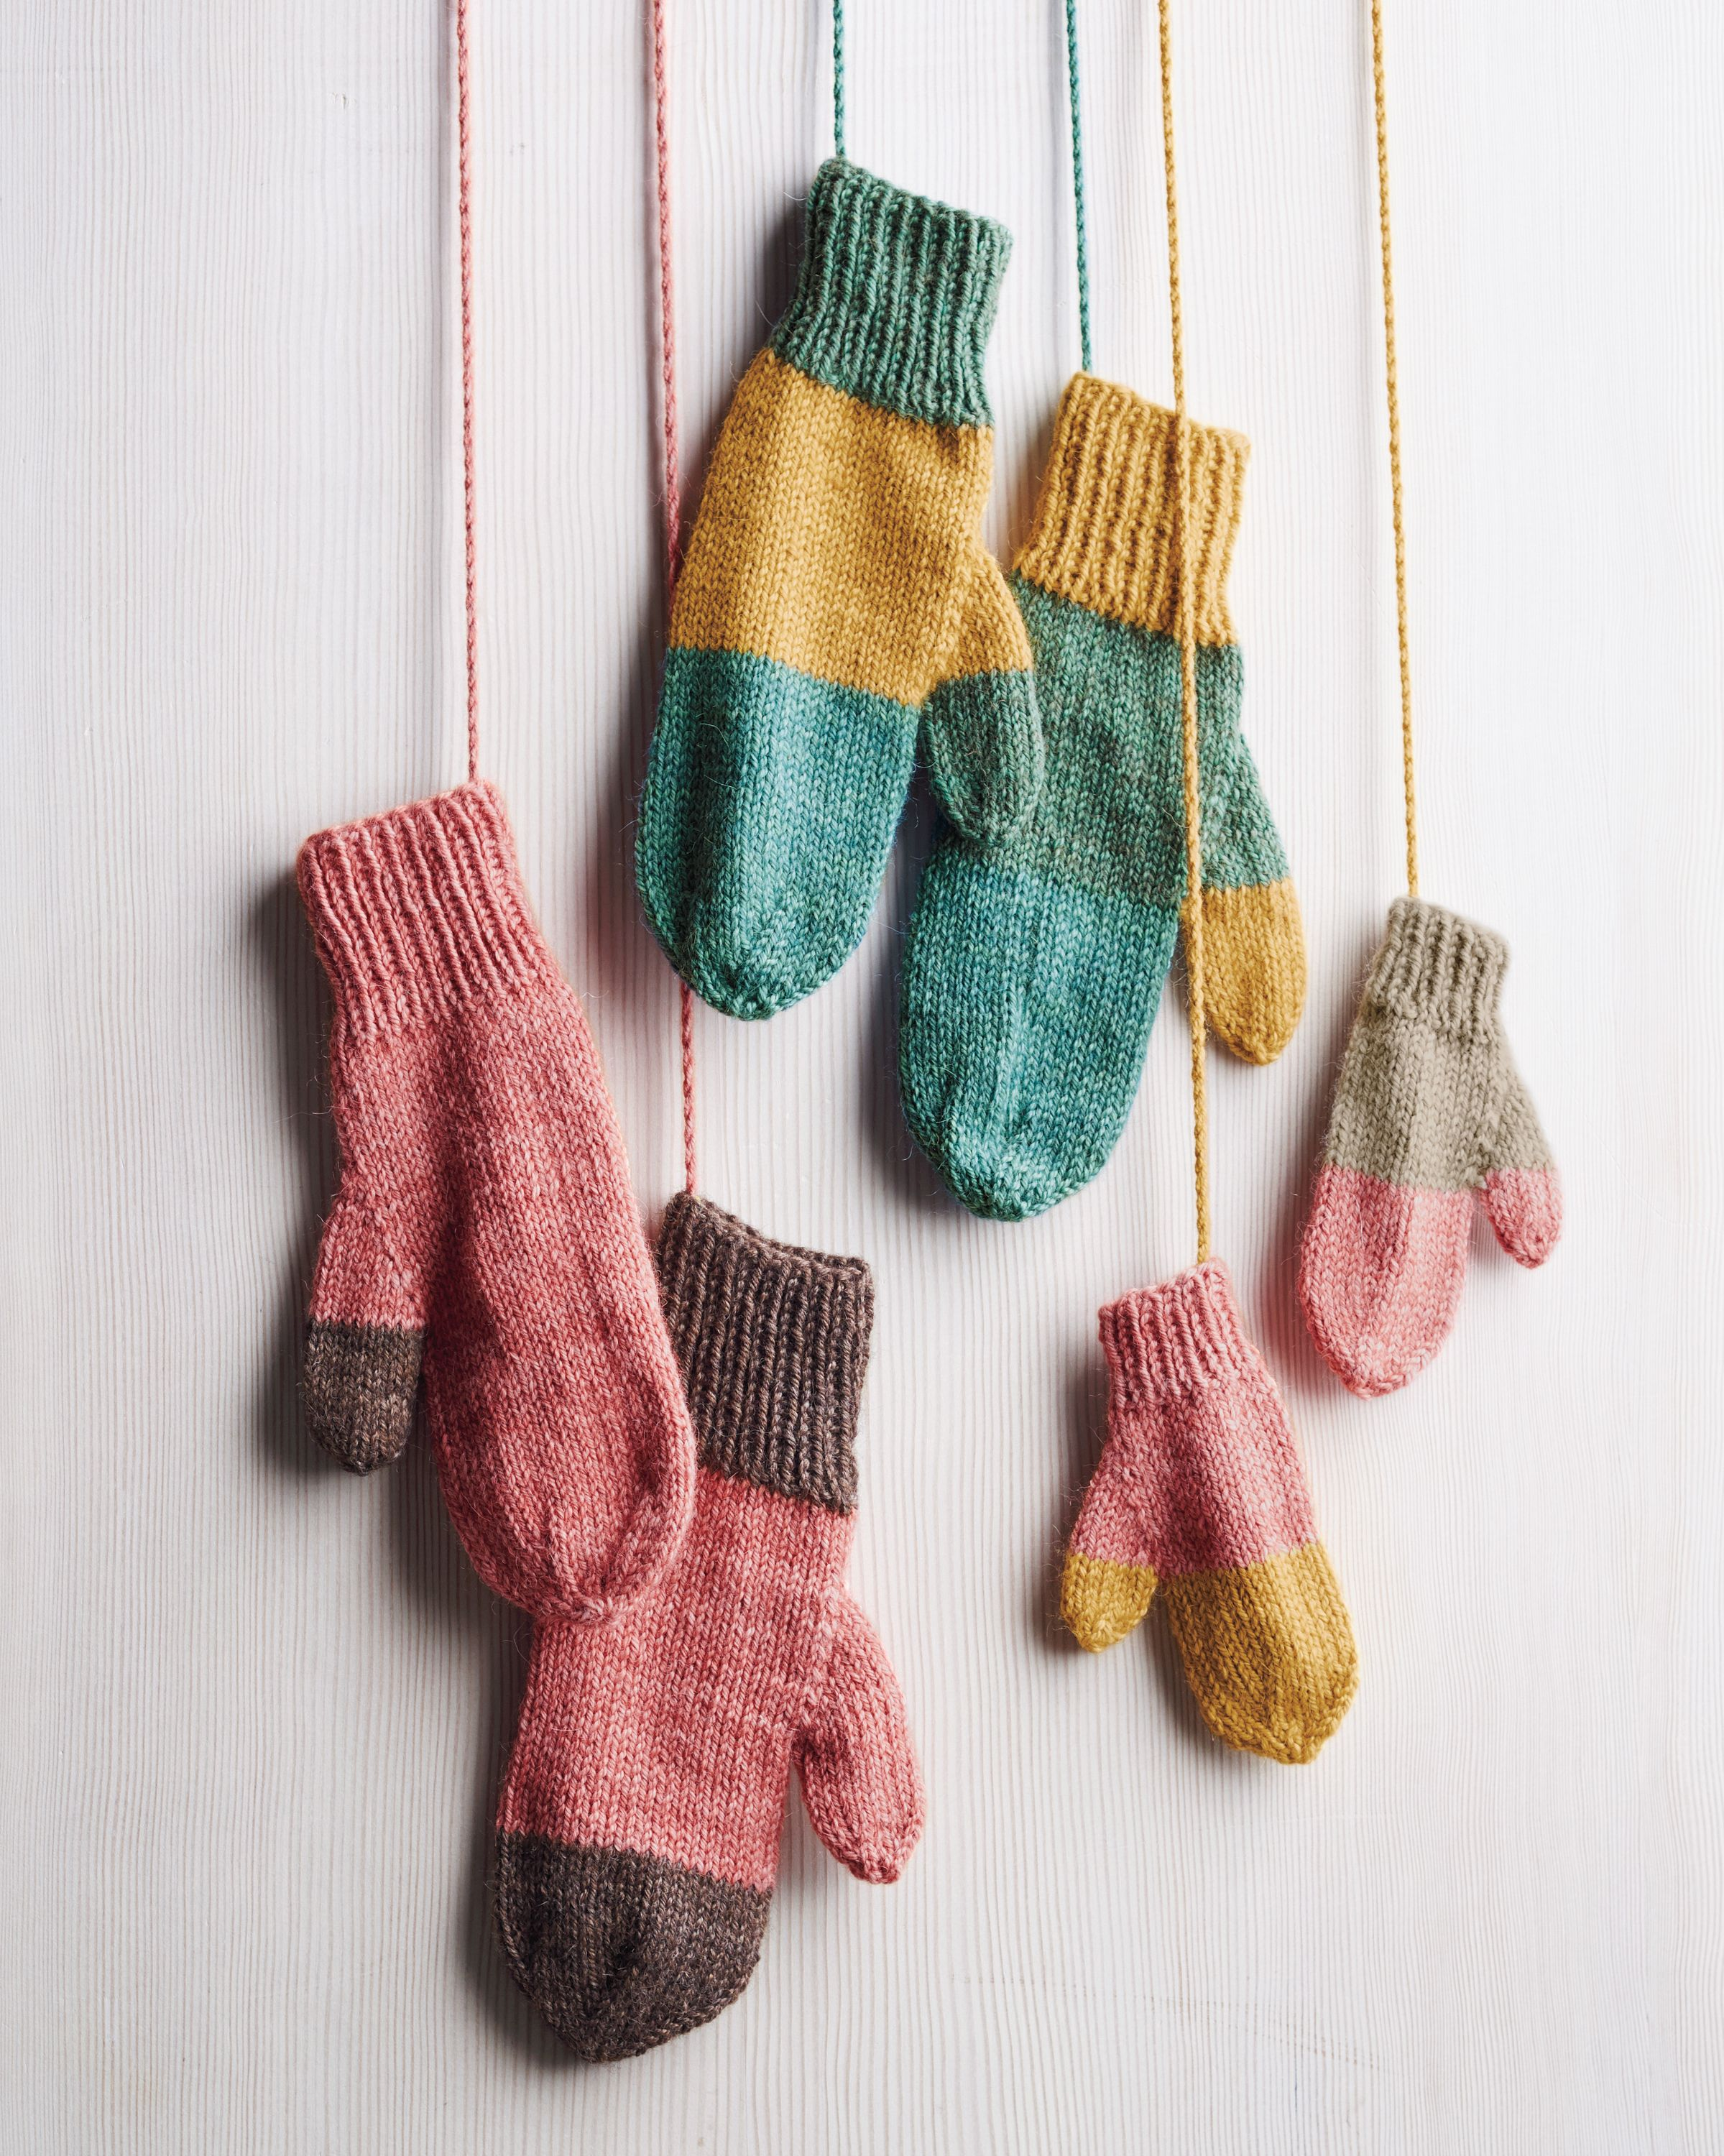 253f9d4a9629 How to Knit Playful Mittens Using Leftover Yarn